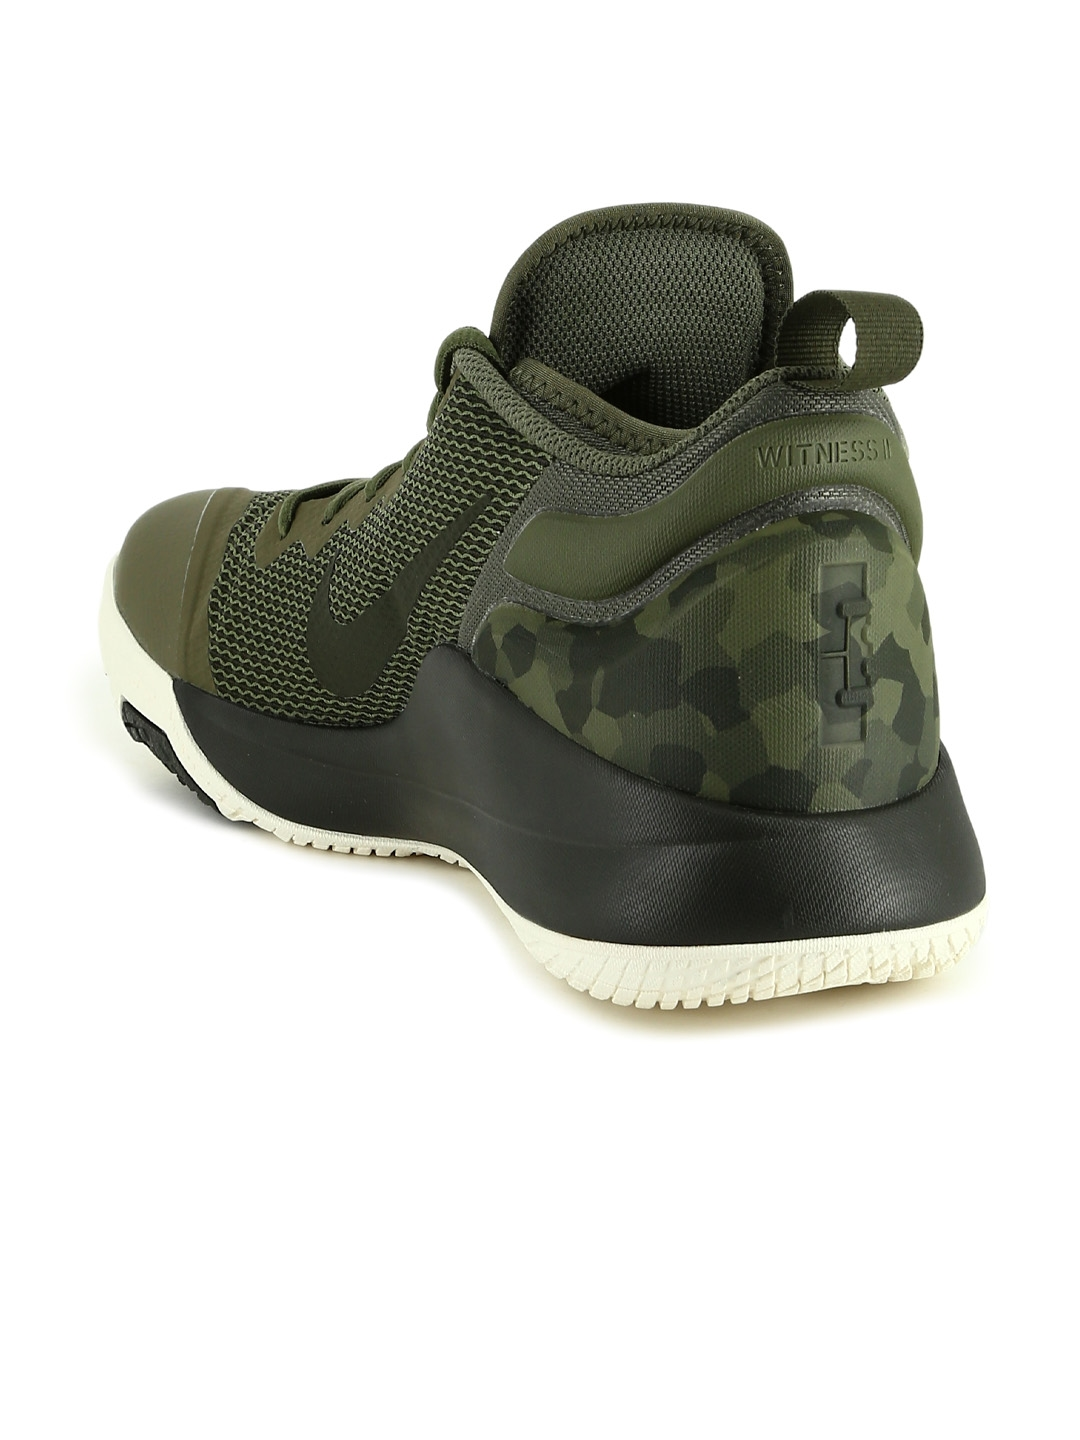 huge discount d2524 0d1fb 11516336255776-Nike-Men-Olive-Green-Textile-Mid-Top-Basketball-Shoes -891516336255702-2.jpg